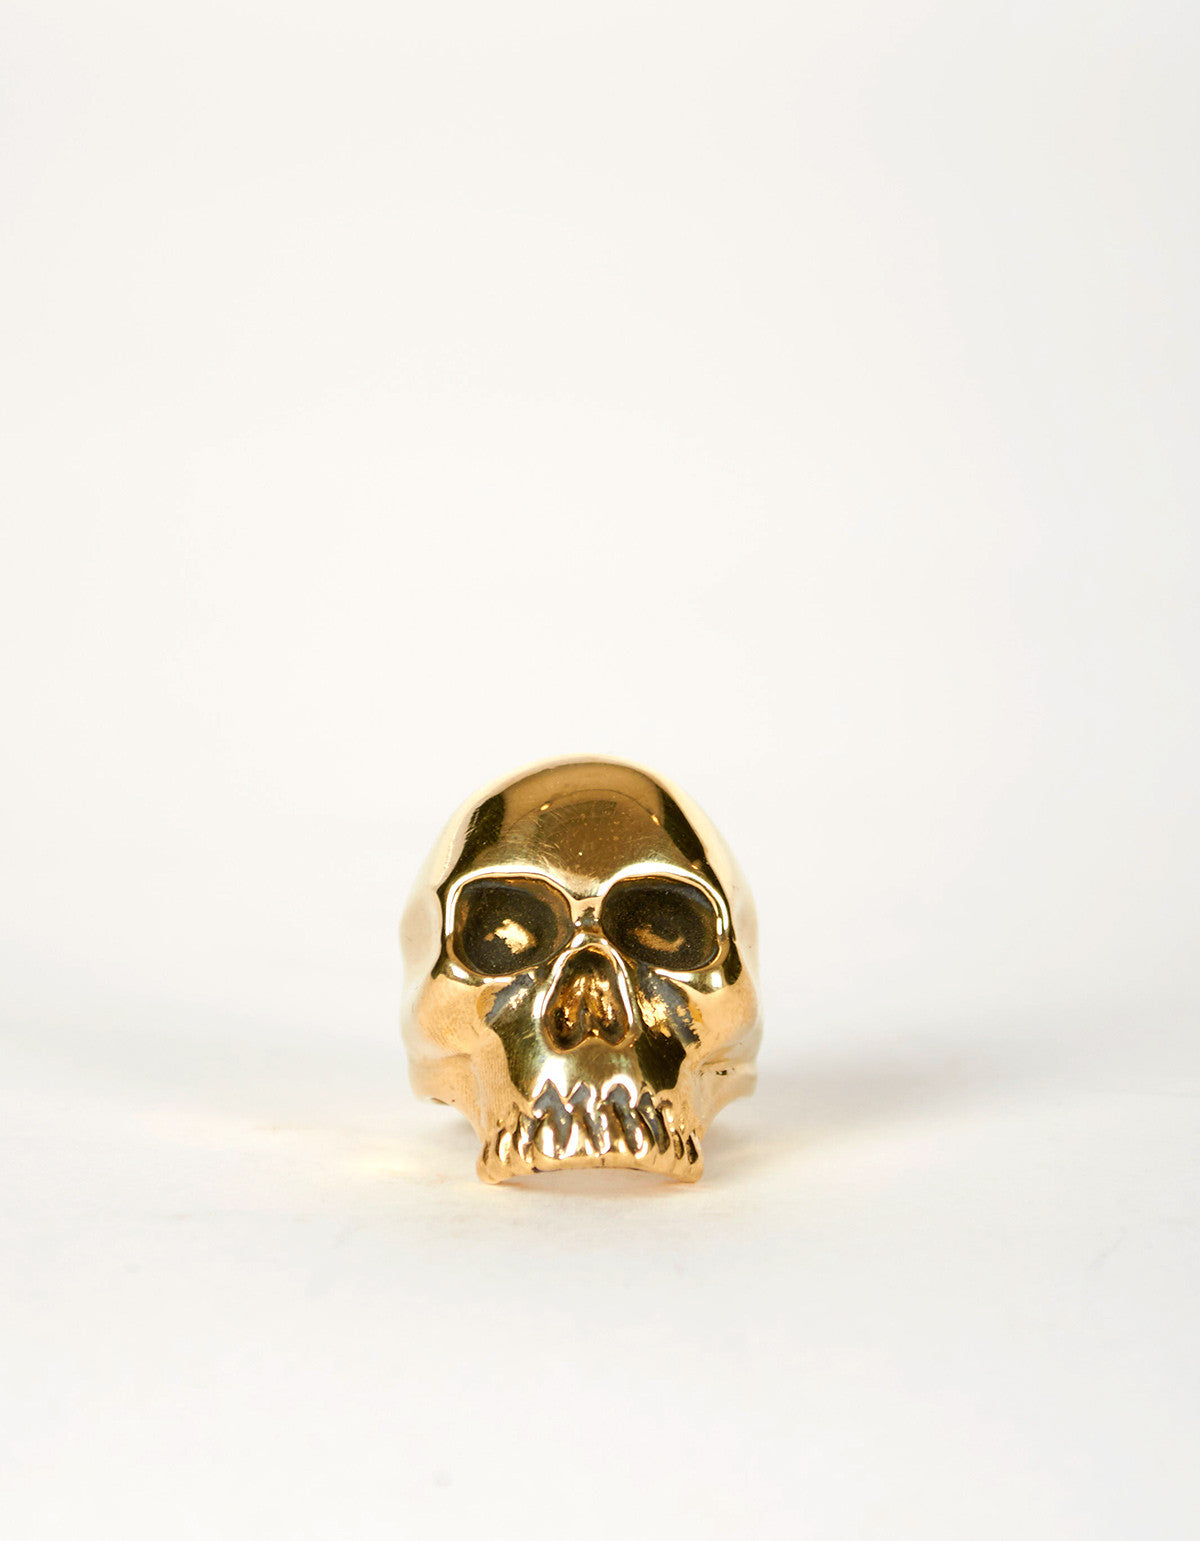 Jon Swinamer Skull Ring Bronze - Still Life - 5